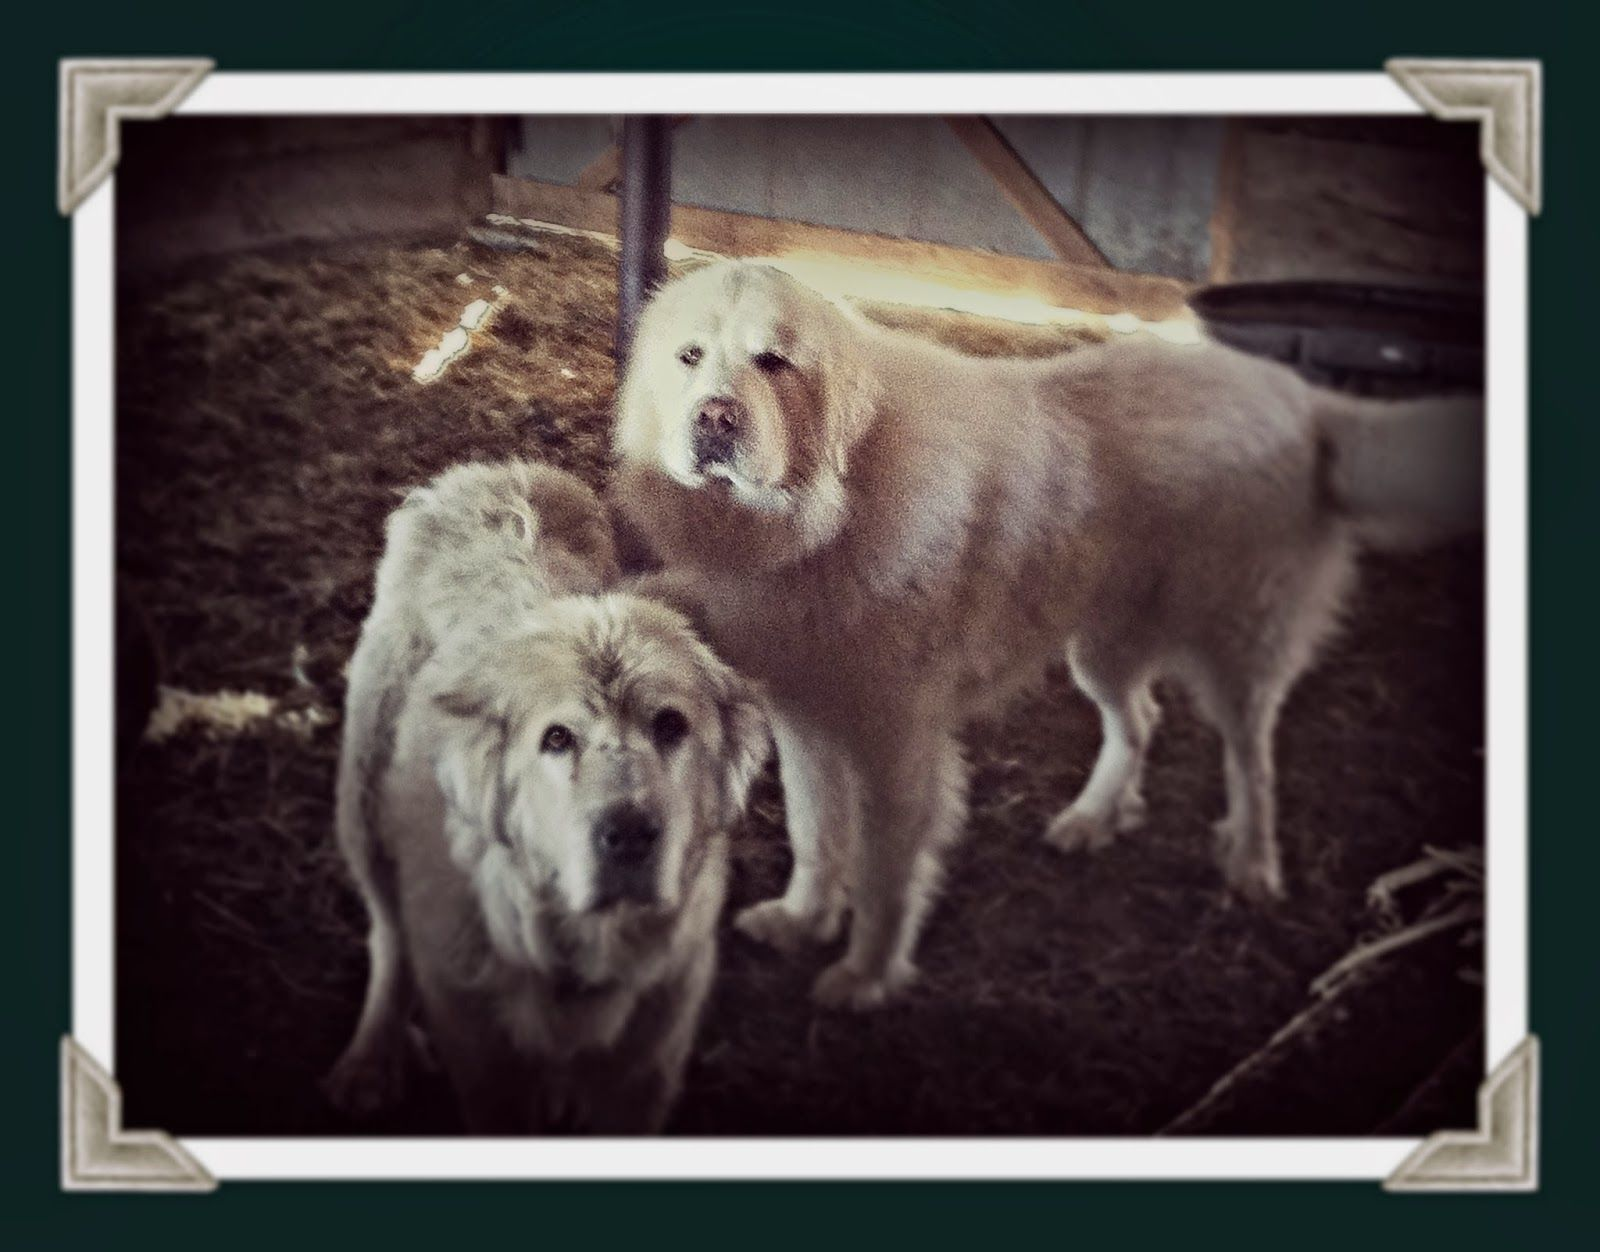 Home farming scents how to make healthy dog food